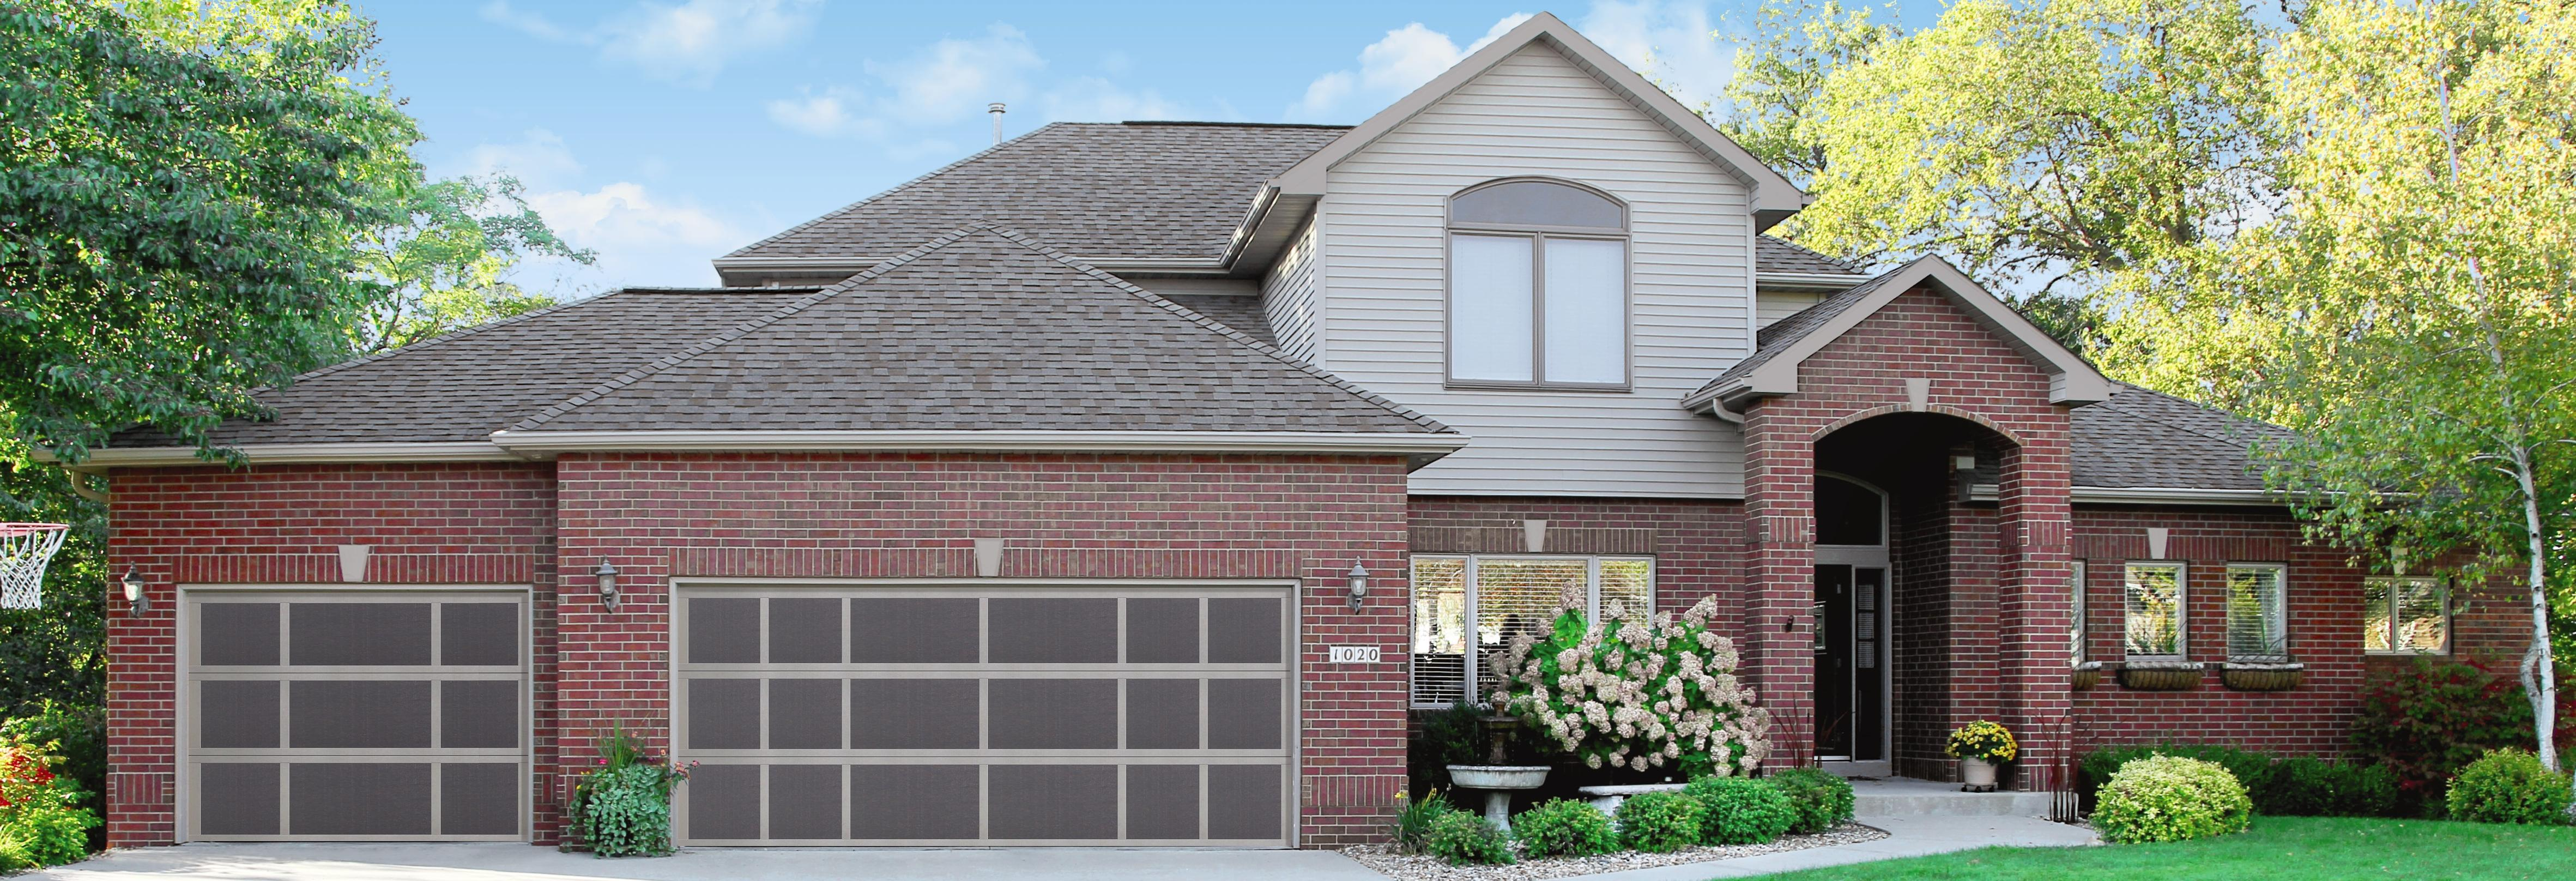 Superieur Overhead Door Garage Doors